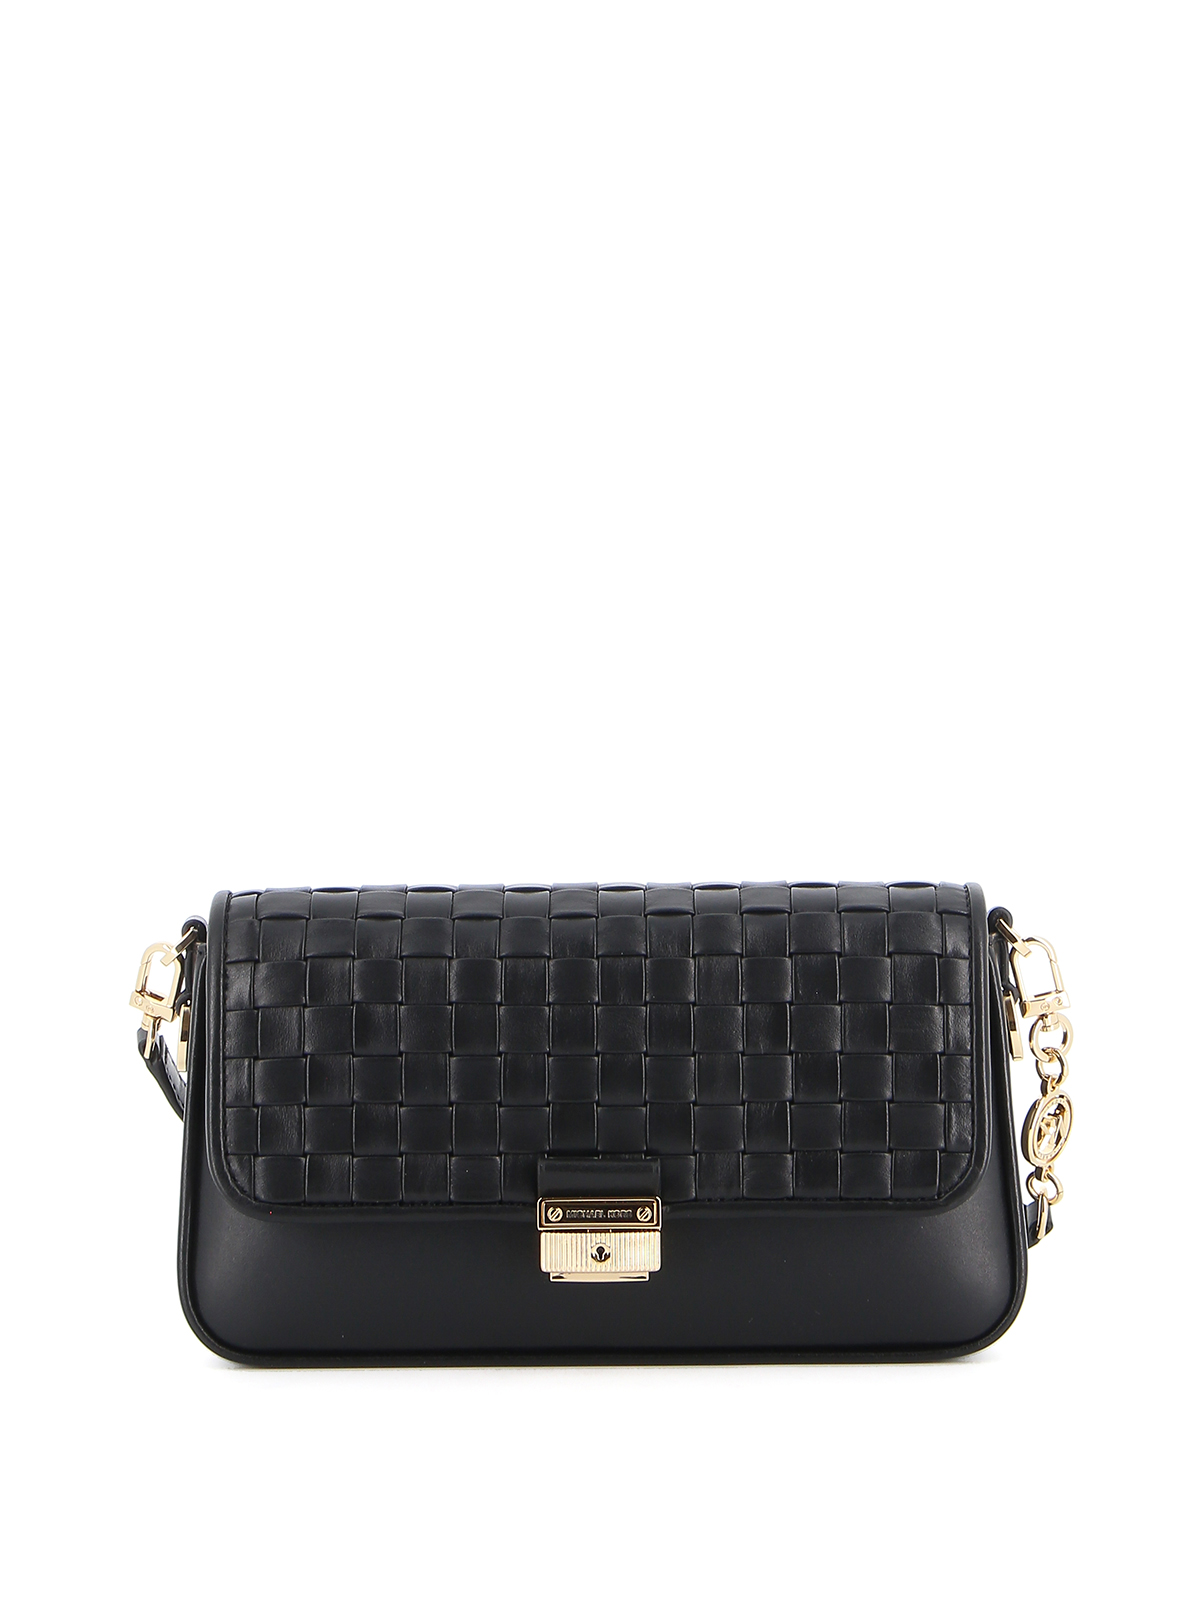 Michael Kors BRADSHAW SMALL BAG